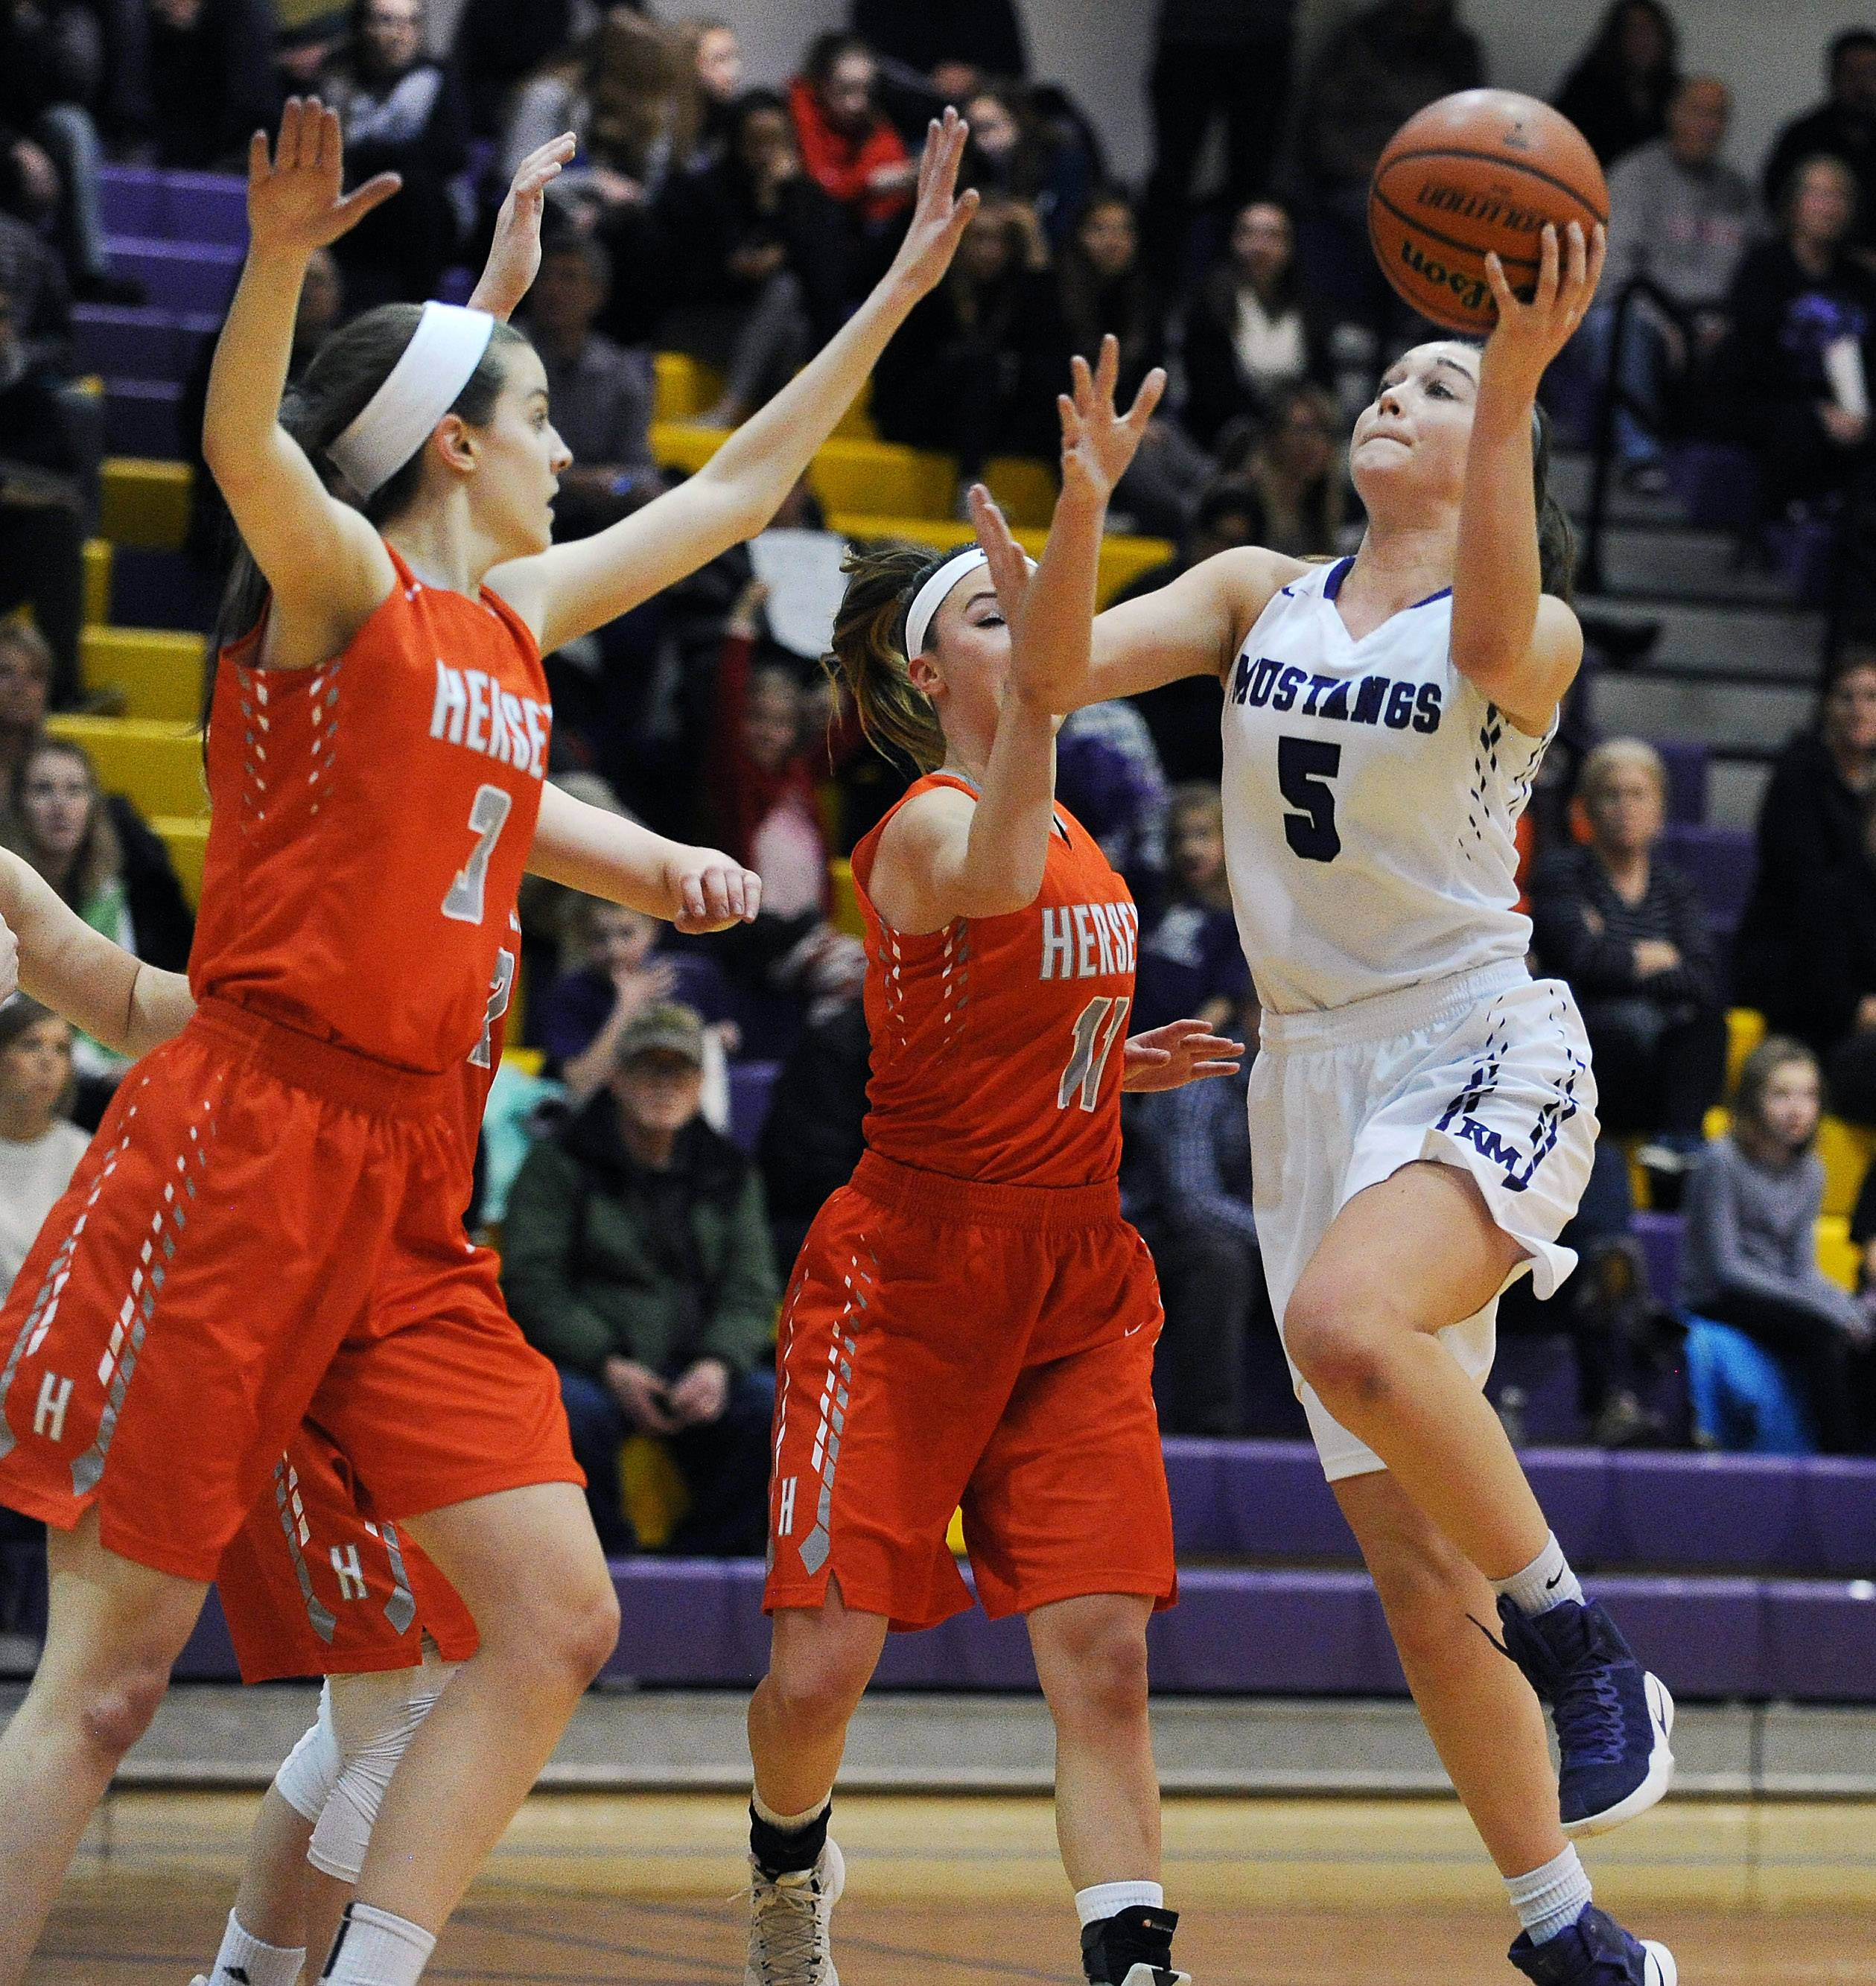 Rolling Meadows' Kyra Spiwak, here driving to basket against Hersey, has committed to a collegiate basketball future at Providence.